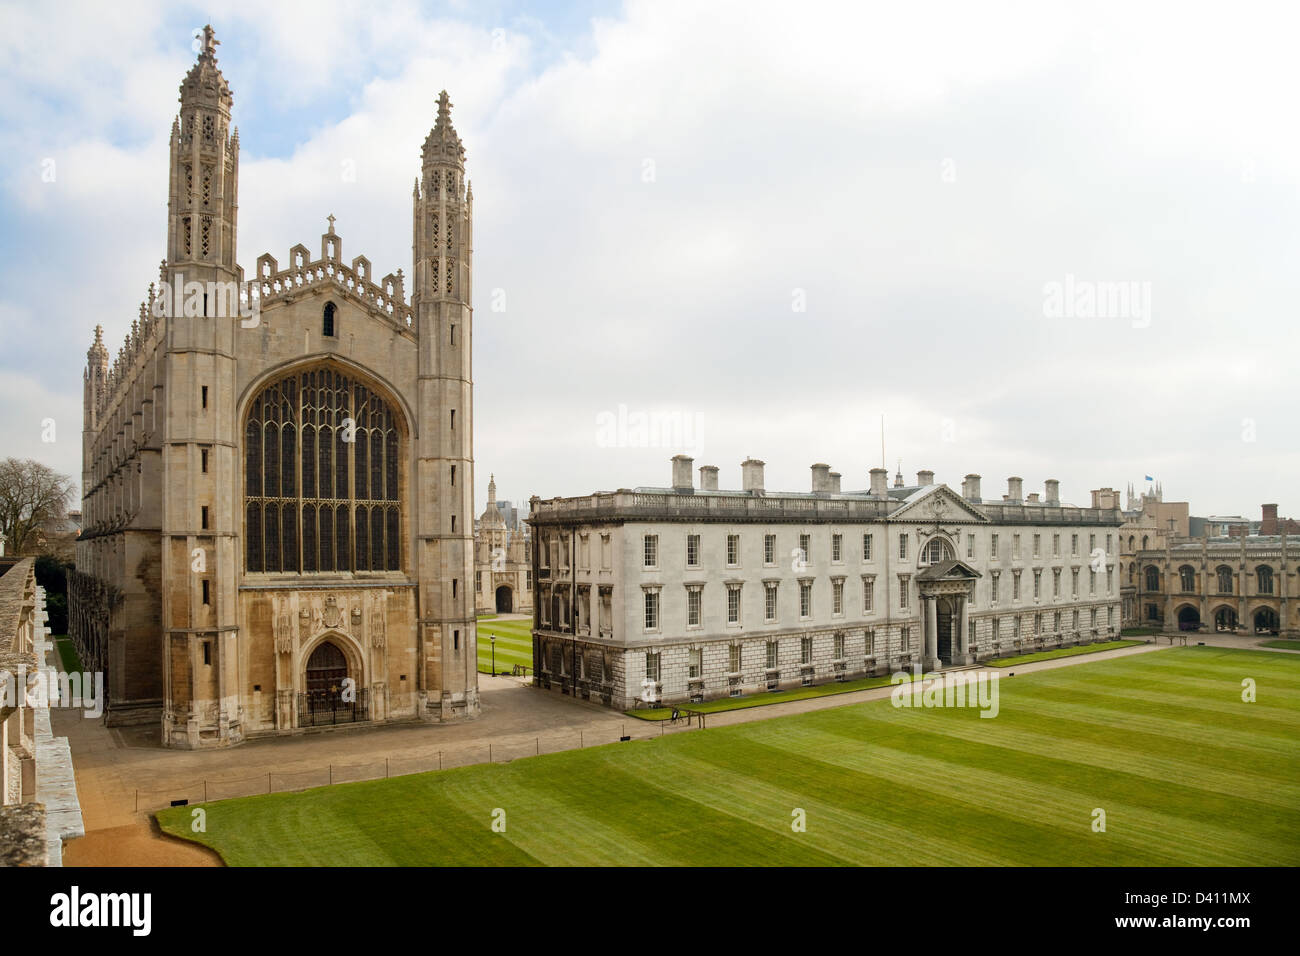 Kings College Chapel and the Gibbs building, Kings college, Cambridge University UK - Stock Image